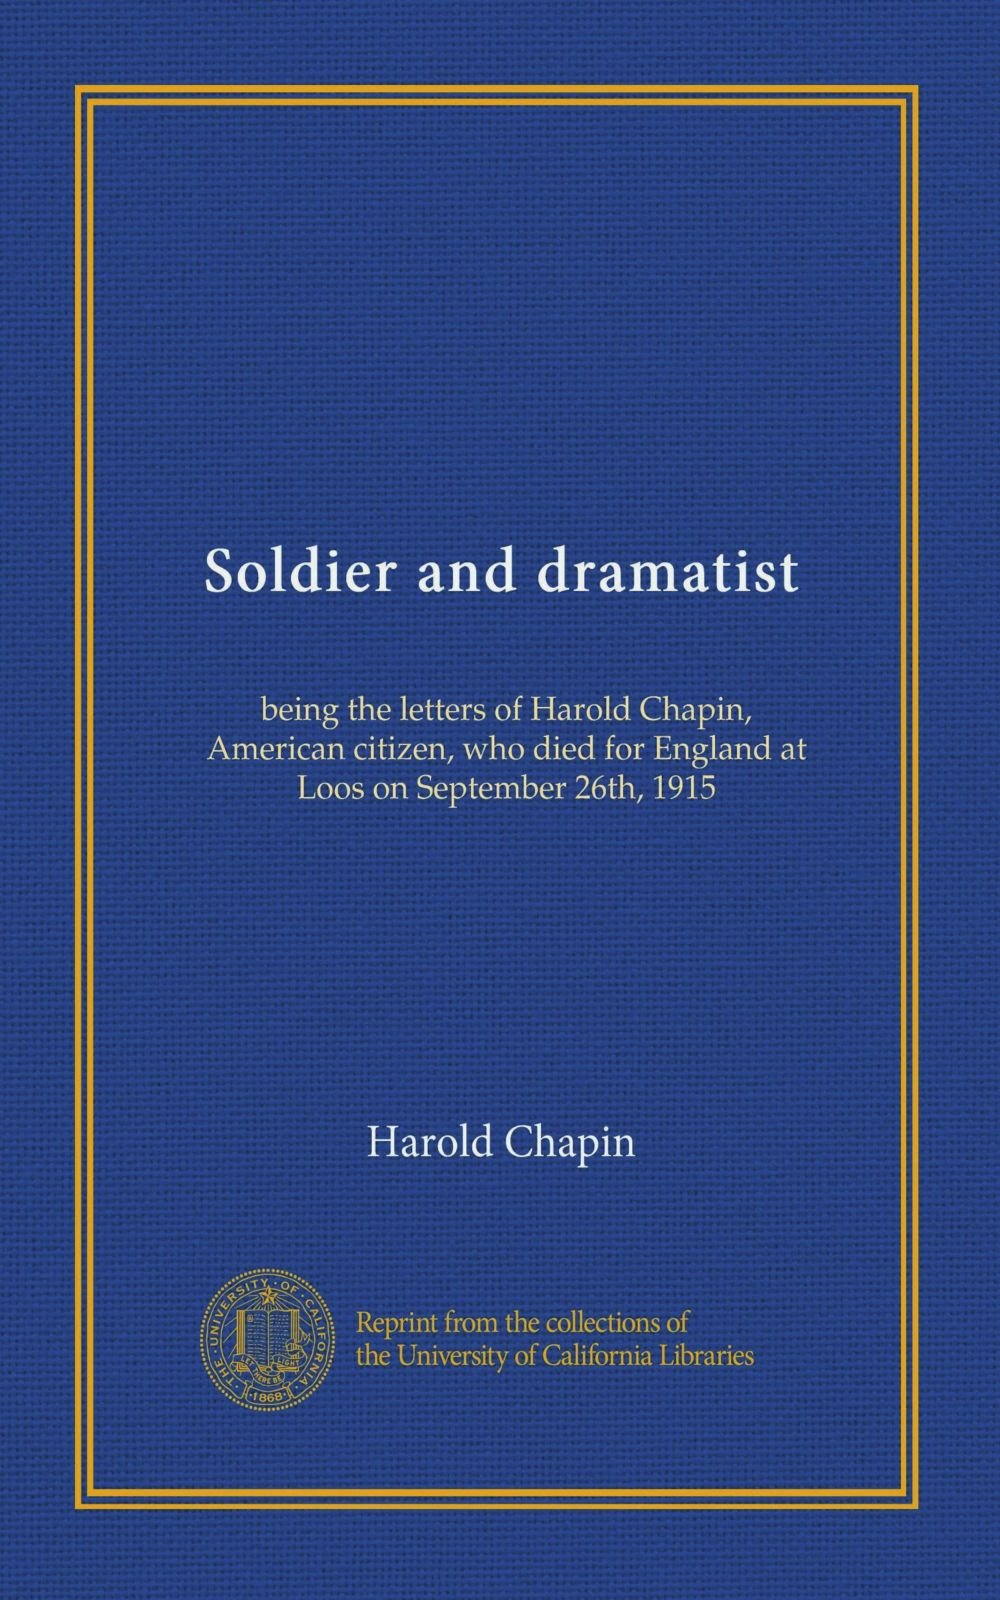 Soldier and dramatist: being the letters of Harold Chapin, American citizen, who died for England at Loos on September 26th, 1915 pdf epub